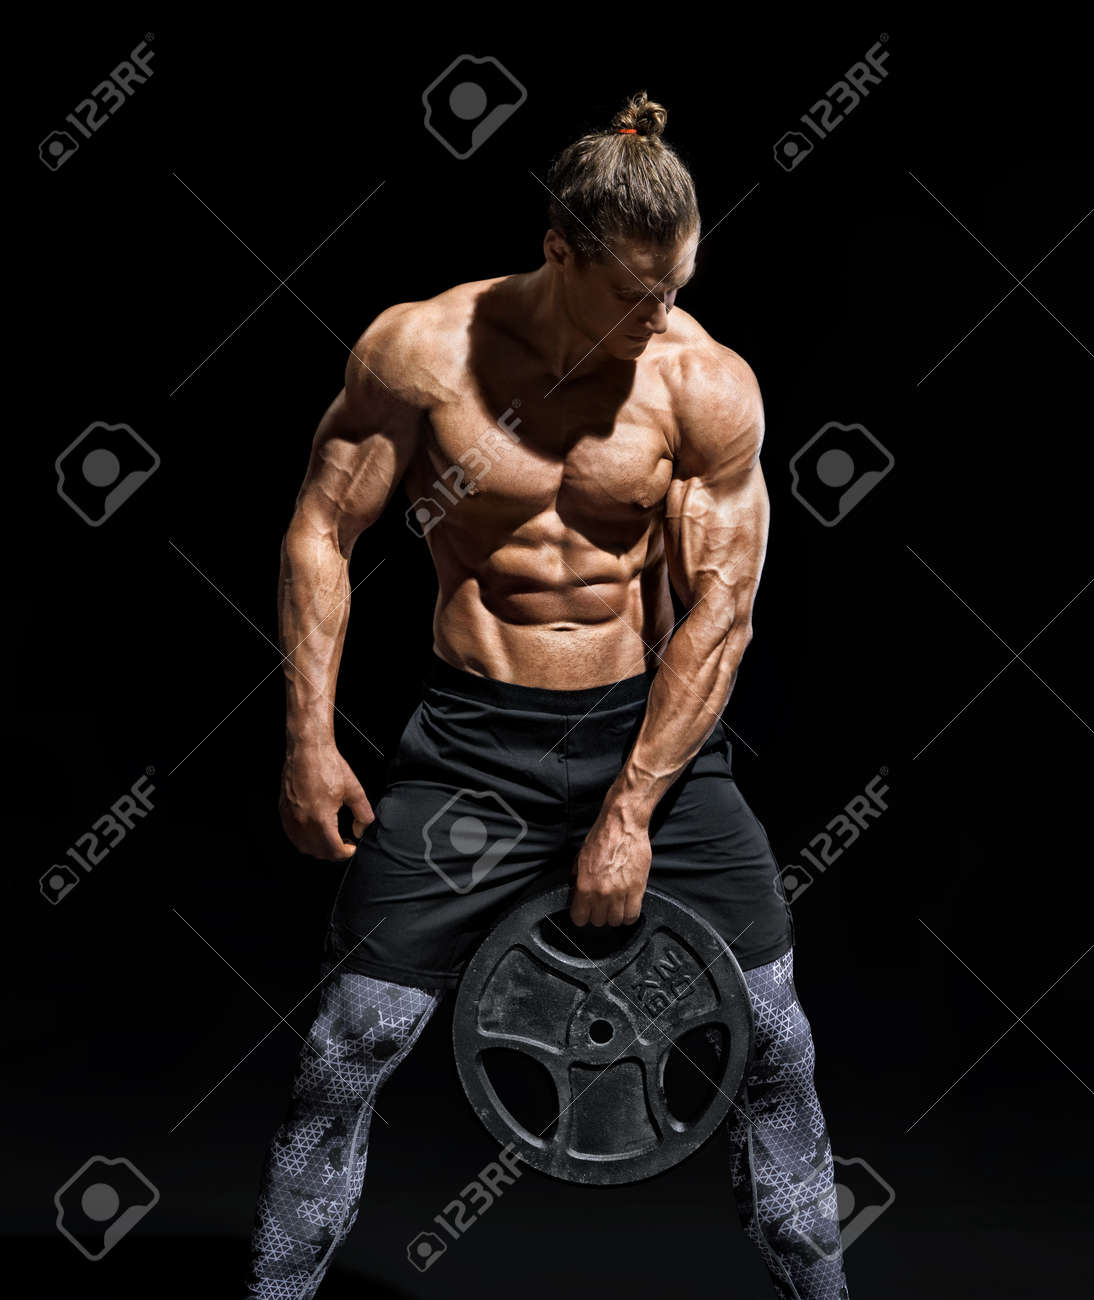 Sportive young man resting after workout with heavy weight disks. Photo of athletic man with torso and good physique on black background. Strength and motivation - 107009880